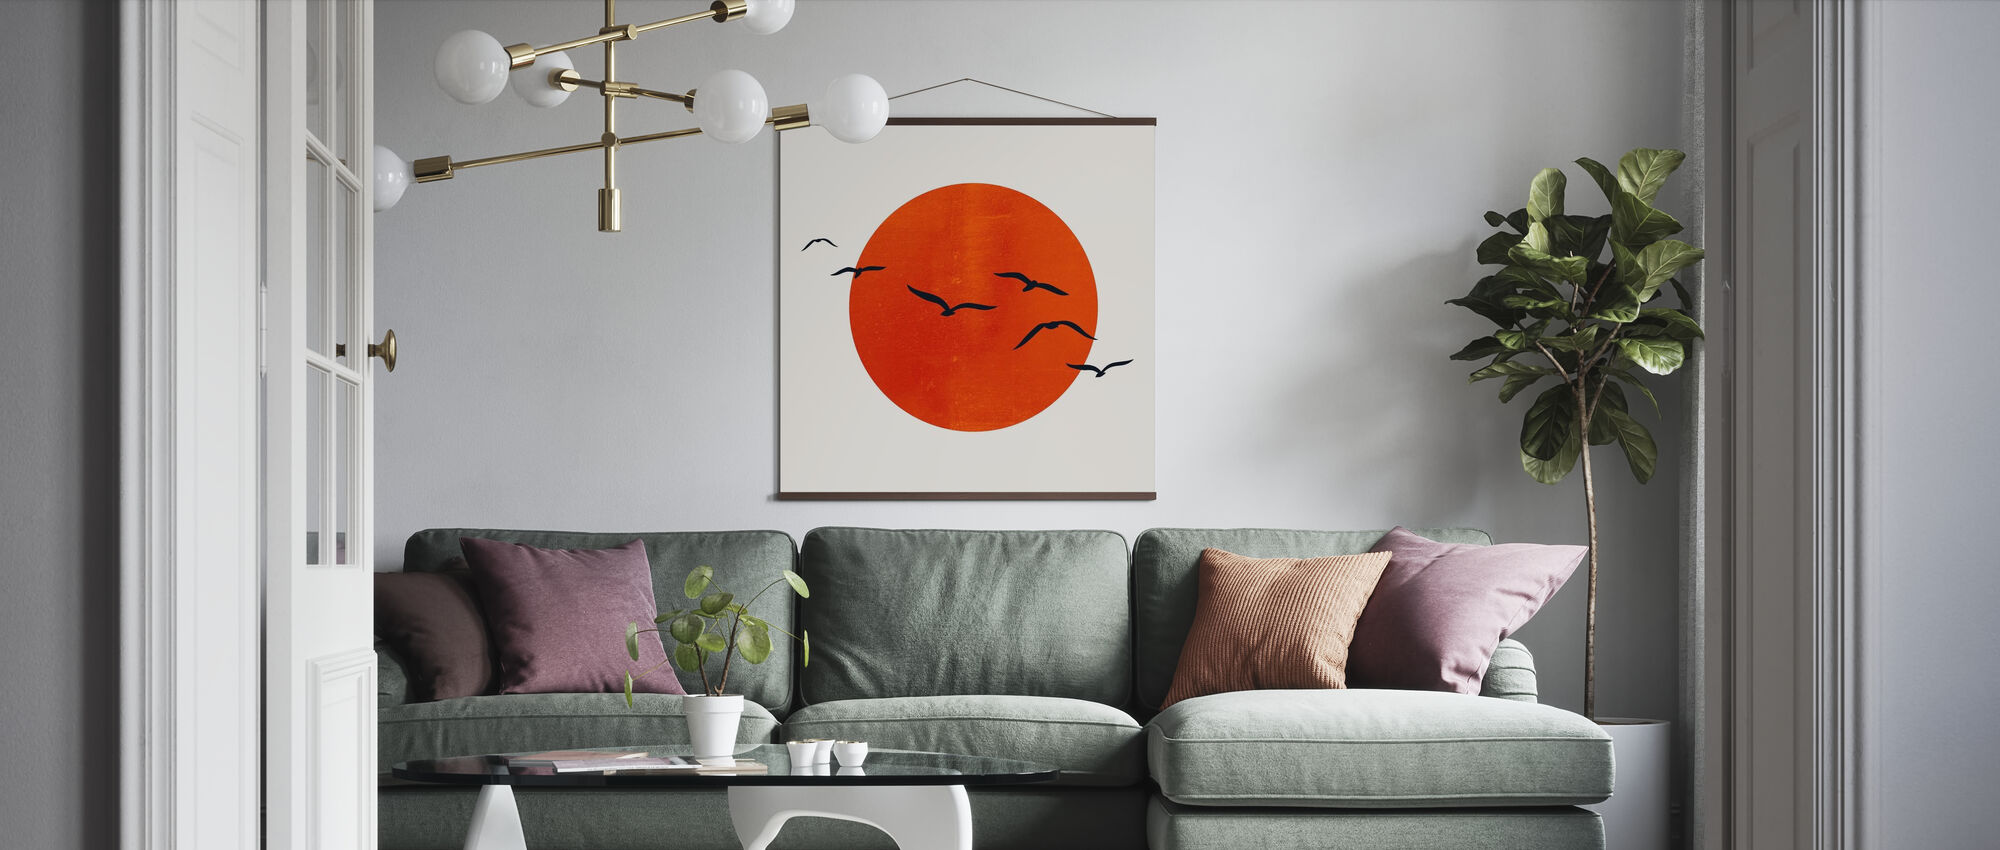 Up in the Sky - Poster - Living Room